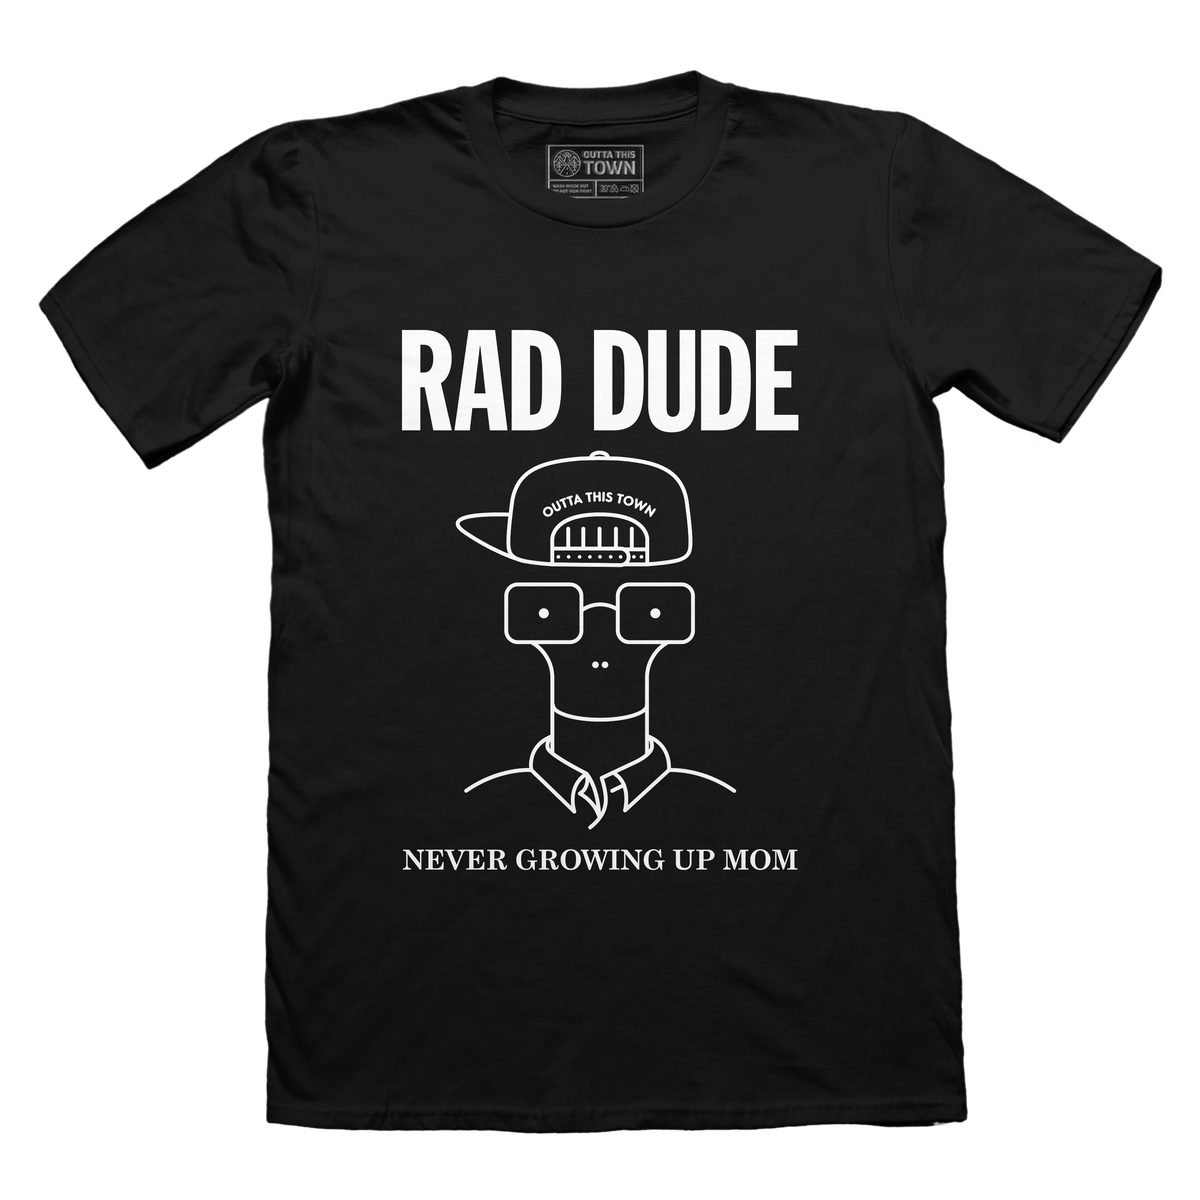 Image of Rad Dude, Never Growing Up Mom T-shirt Black 🤙